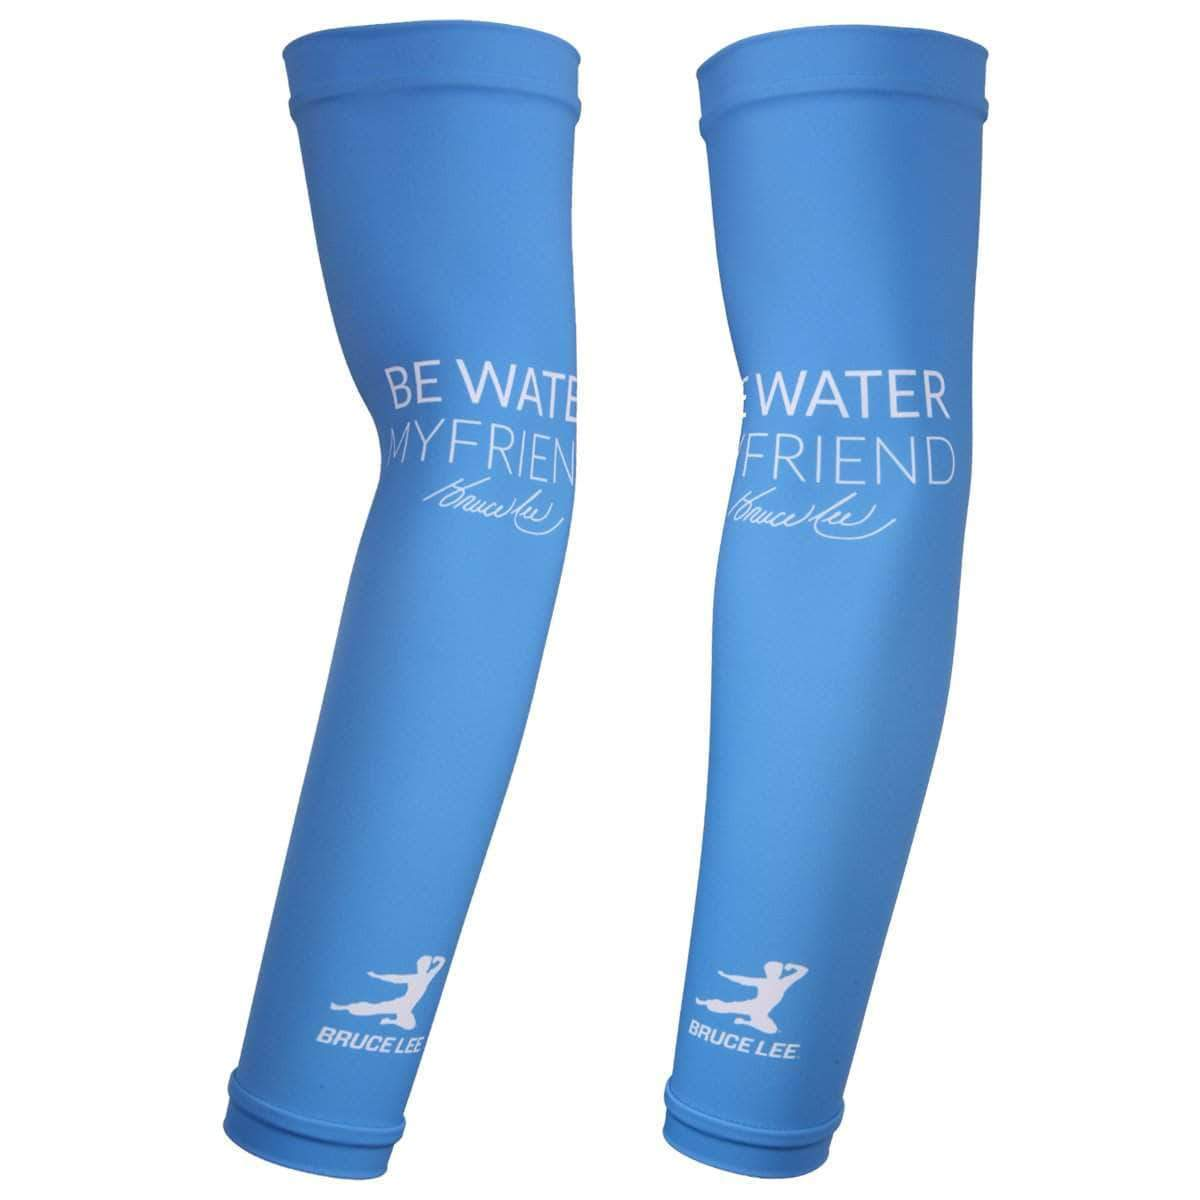 Be Water, My Friend Compression Sleeve